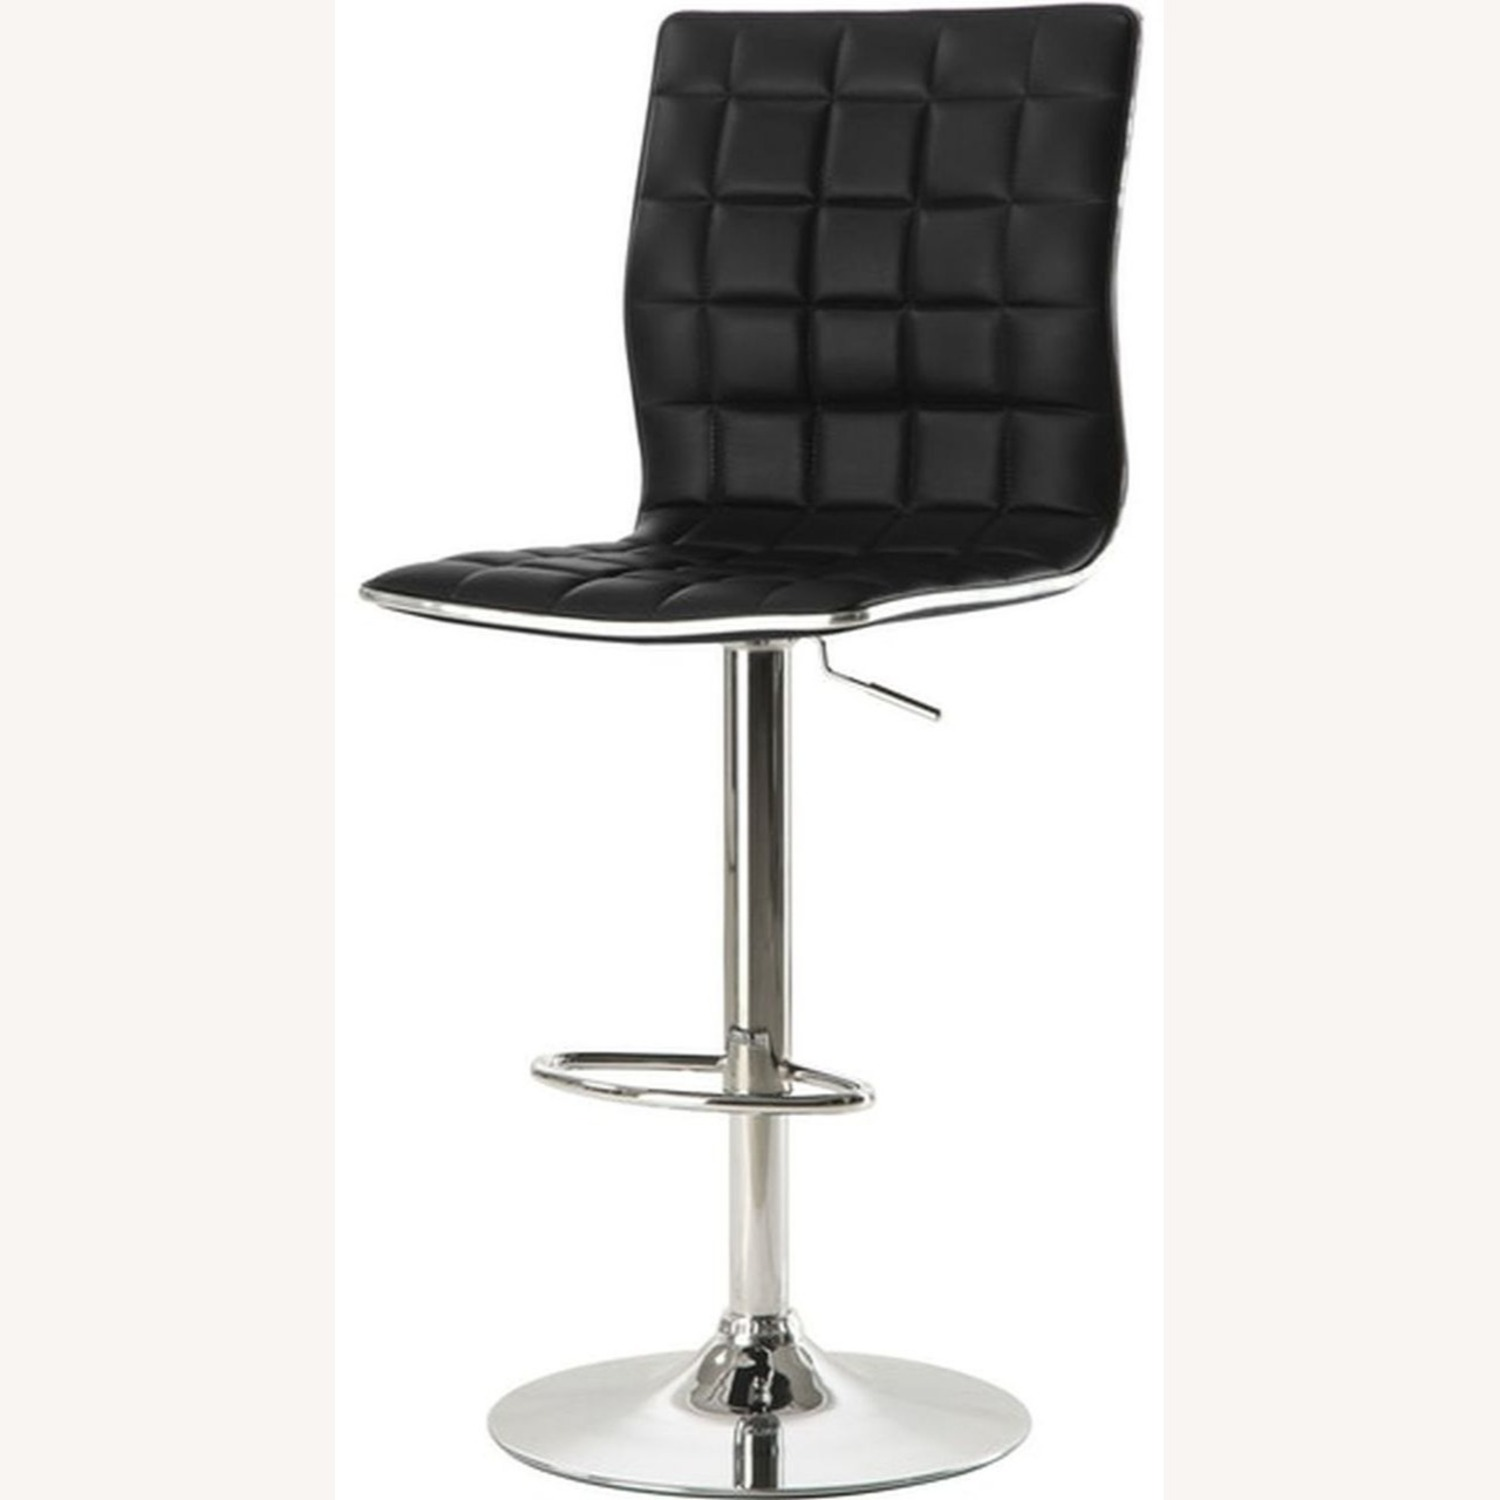 Bar Stool In Black Faux Leather W/ Adjustable Base - image-1